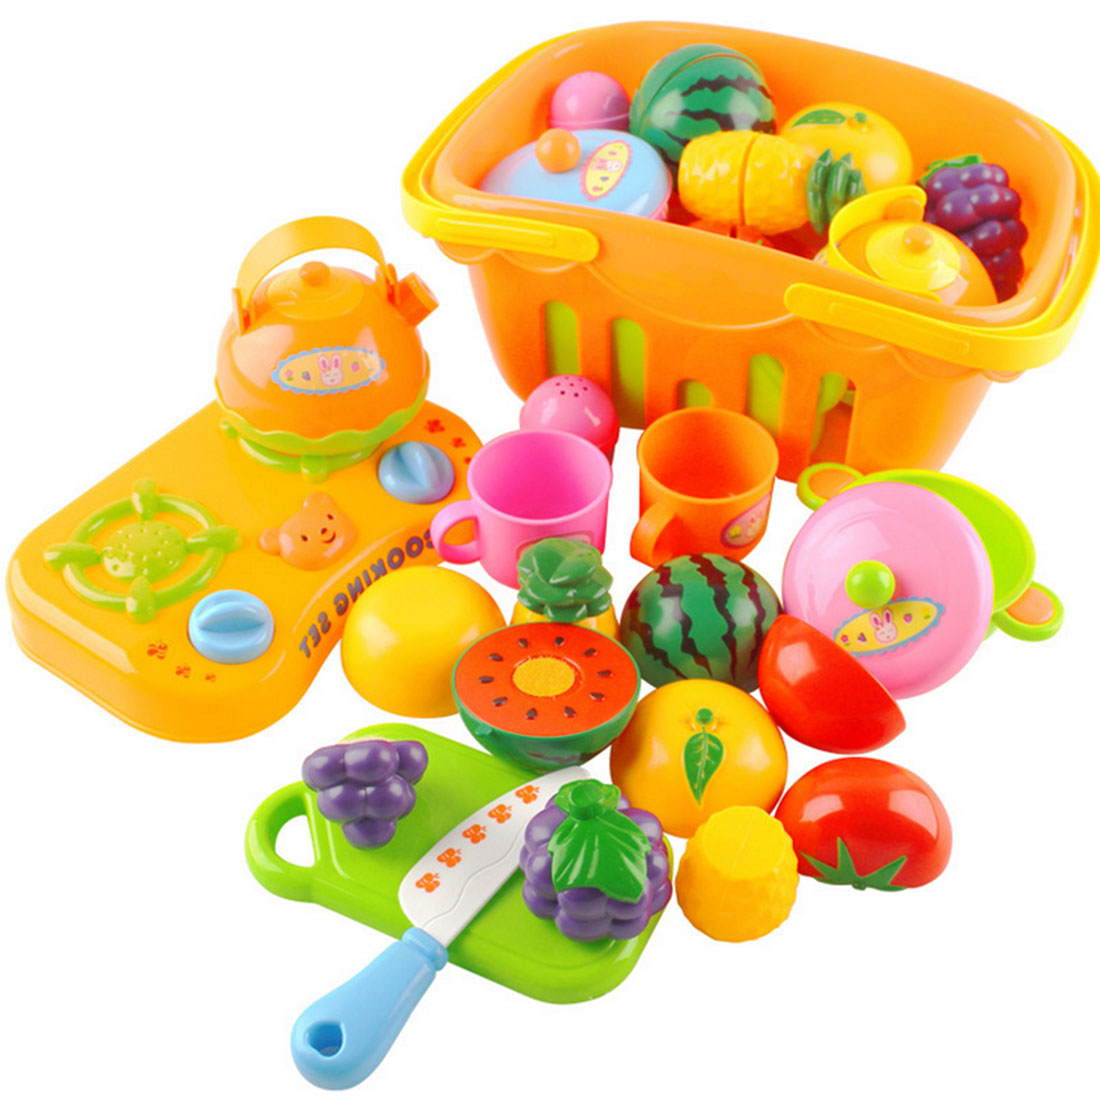 13Pcs/set Plastic Fruit Vegetable Kitchen Cutting Toy Early Development and Education Toy for Baby Kids Children - Color Random